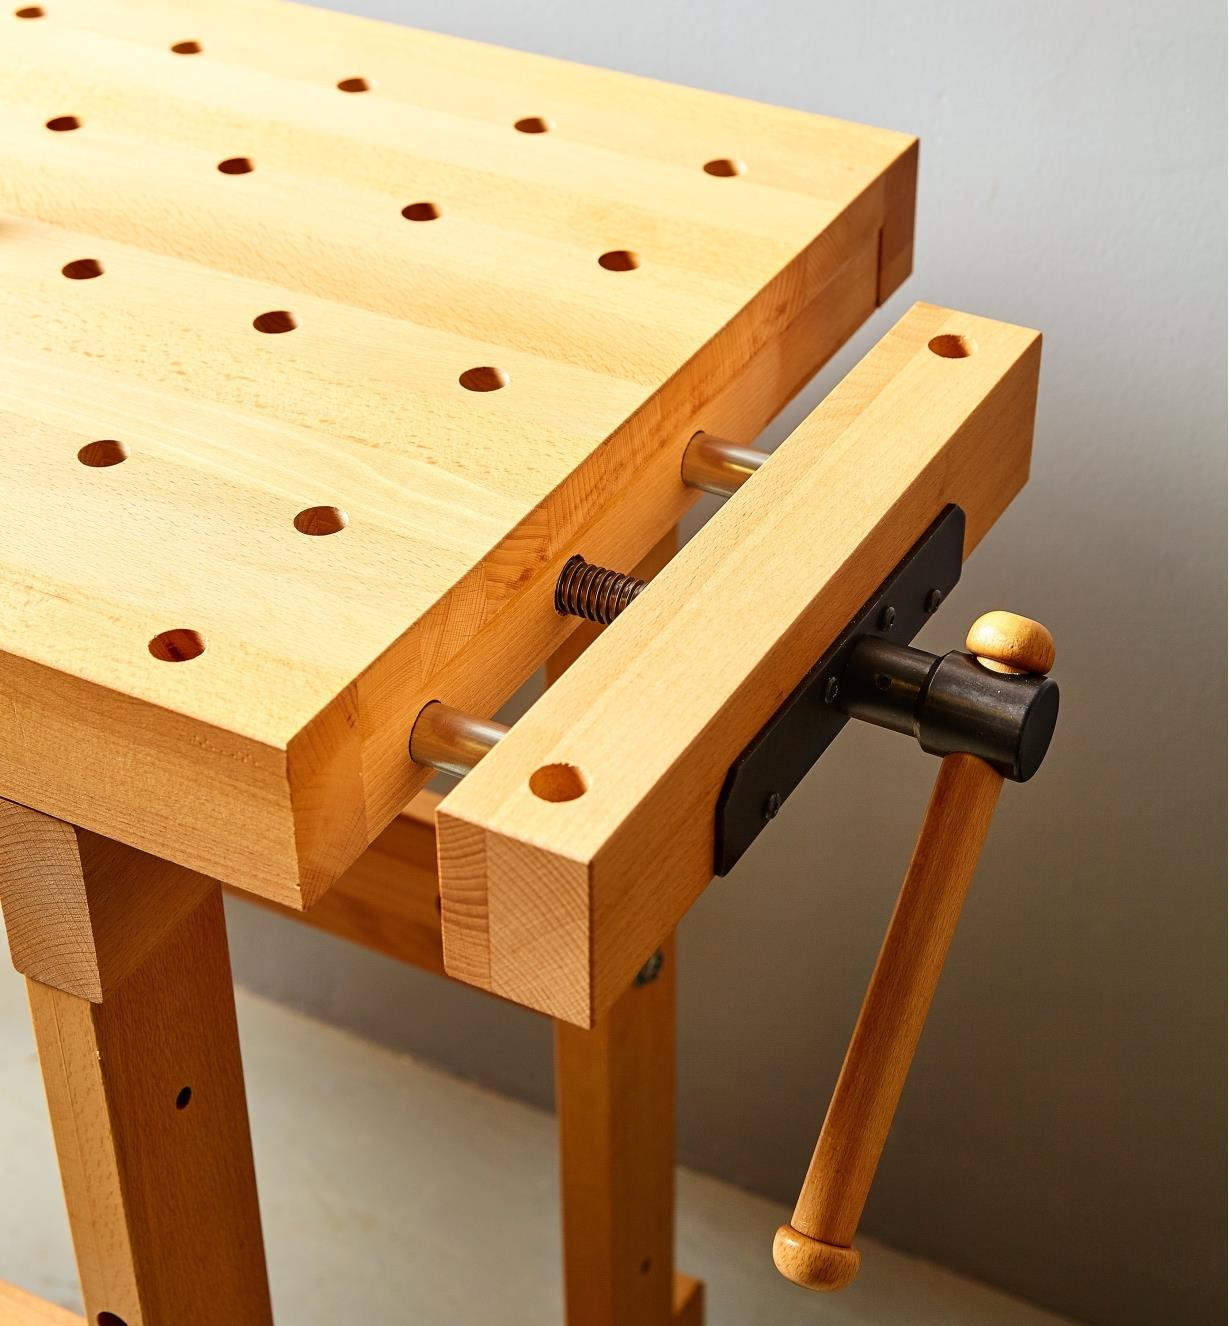 Closer view of the Sjöbergs apartment workbench's end vise showing the double guide rods